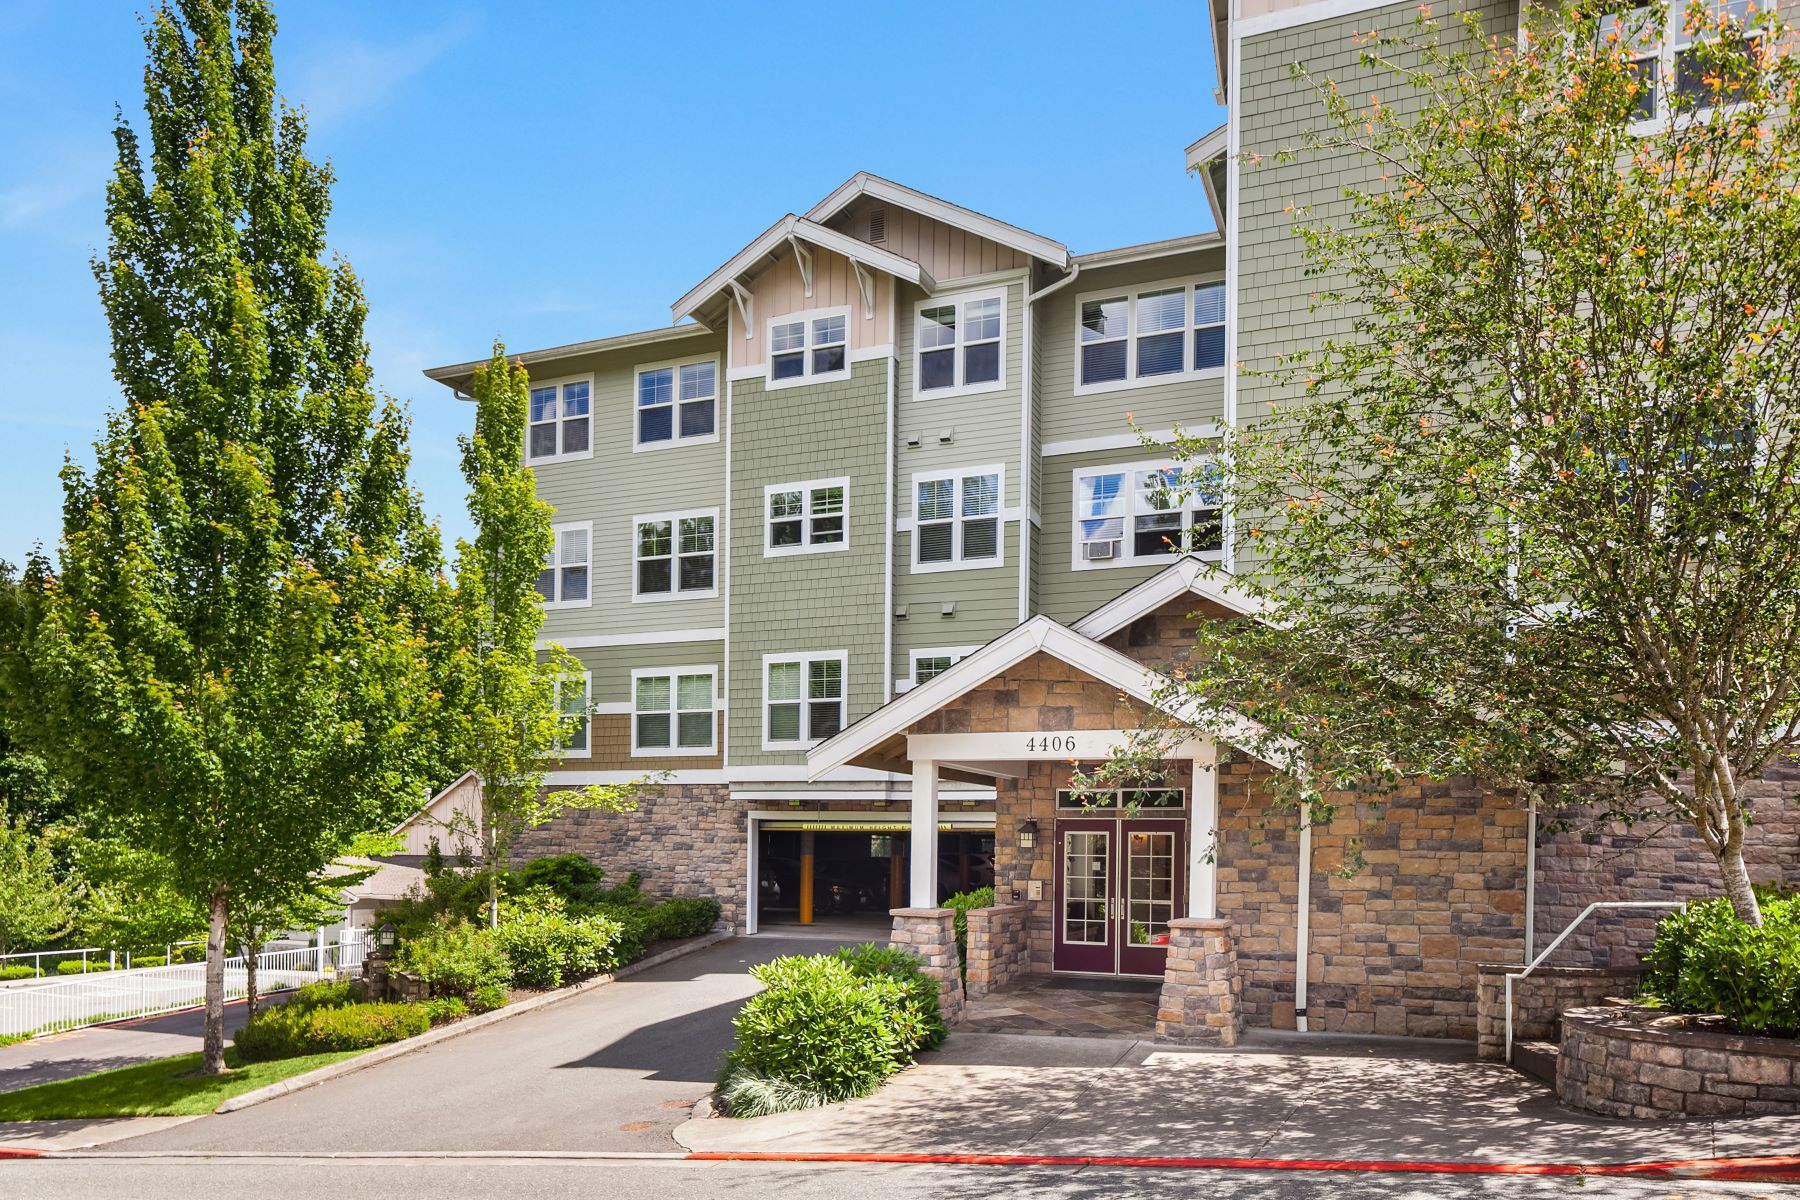 Condominiums for Sale at 4406 Providence Point Place SE Unit#307, Issaquah, WA 98029 4406 Providence Point Place SE Unit#307 Issaquah, Washington 98029 United States